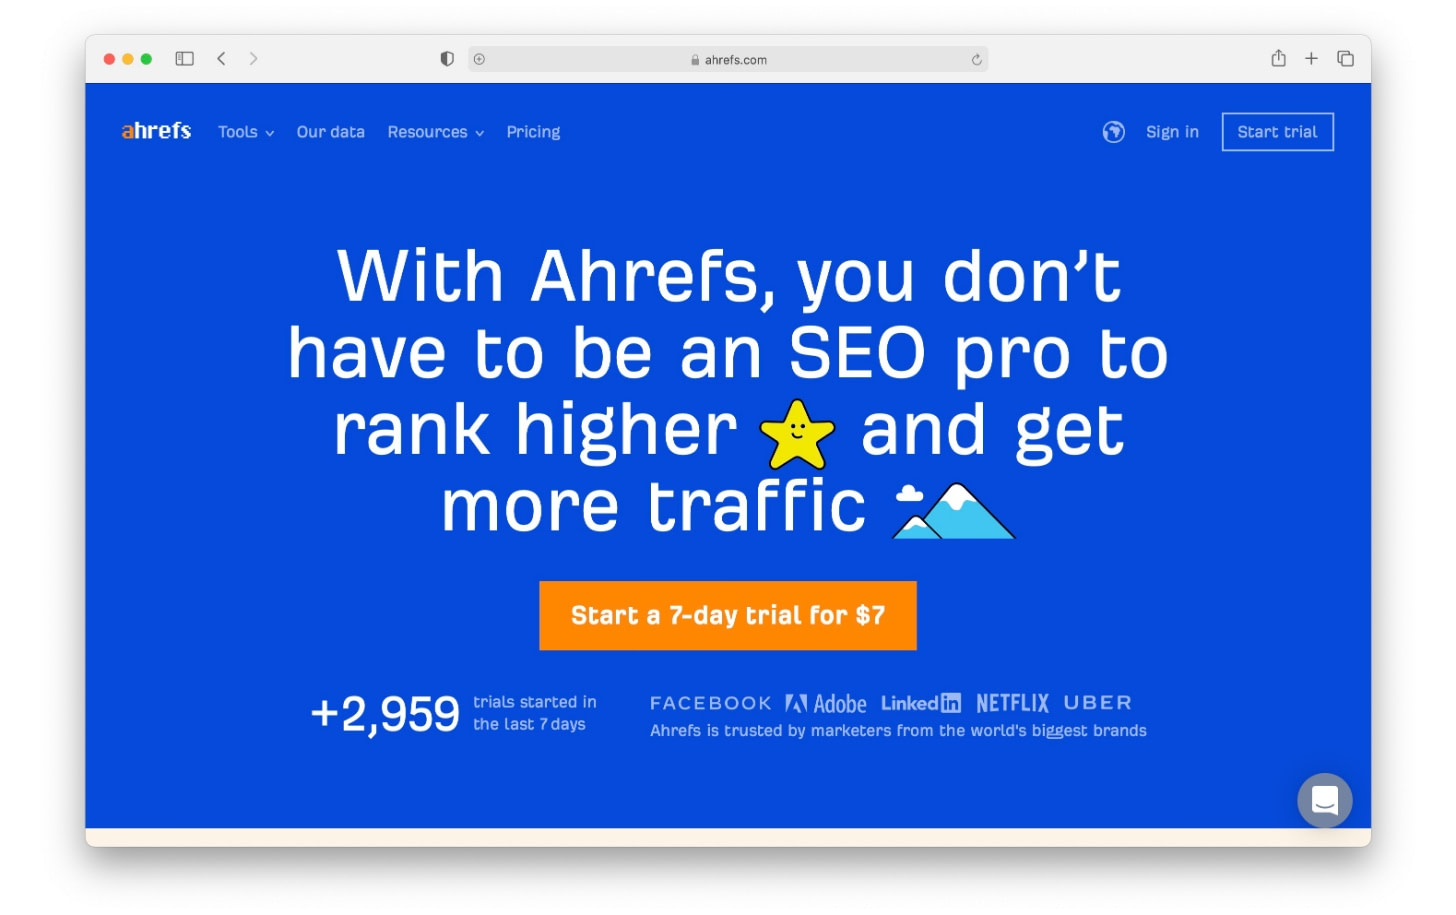 Ahrefs is one of the most powerful SEO tools on the market